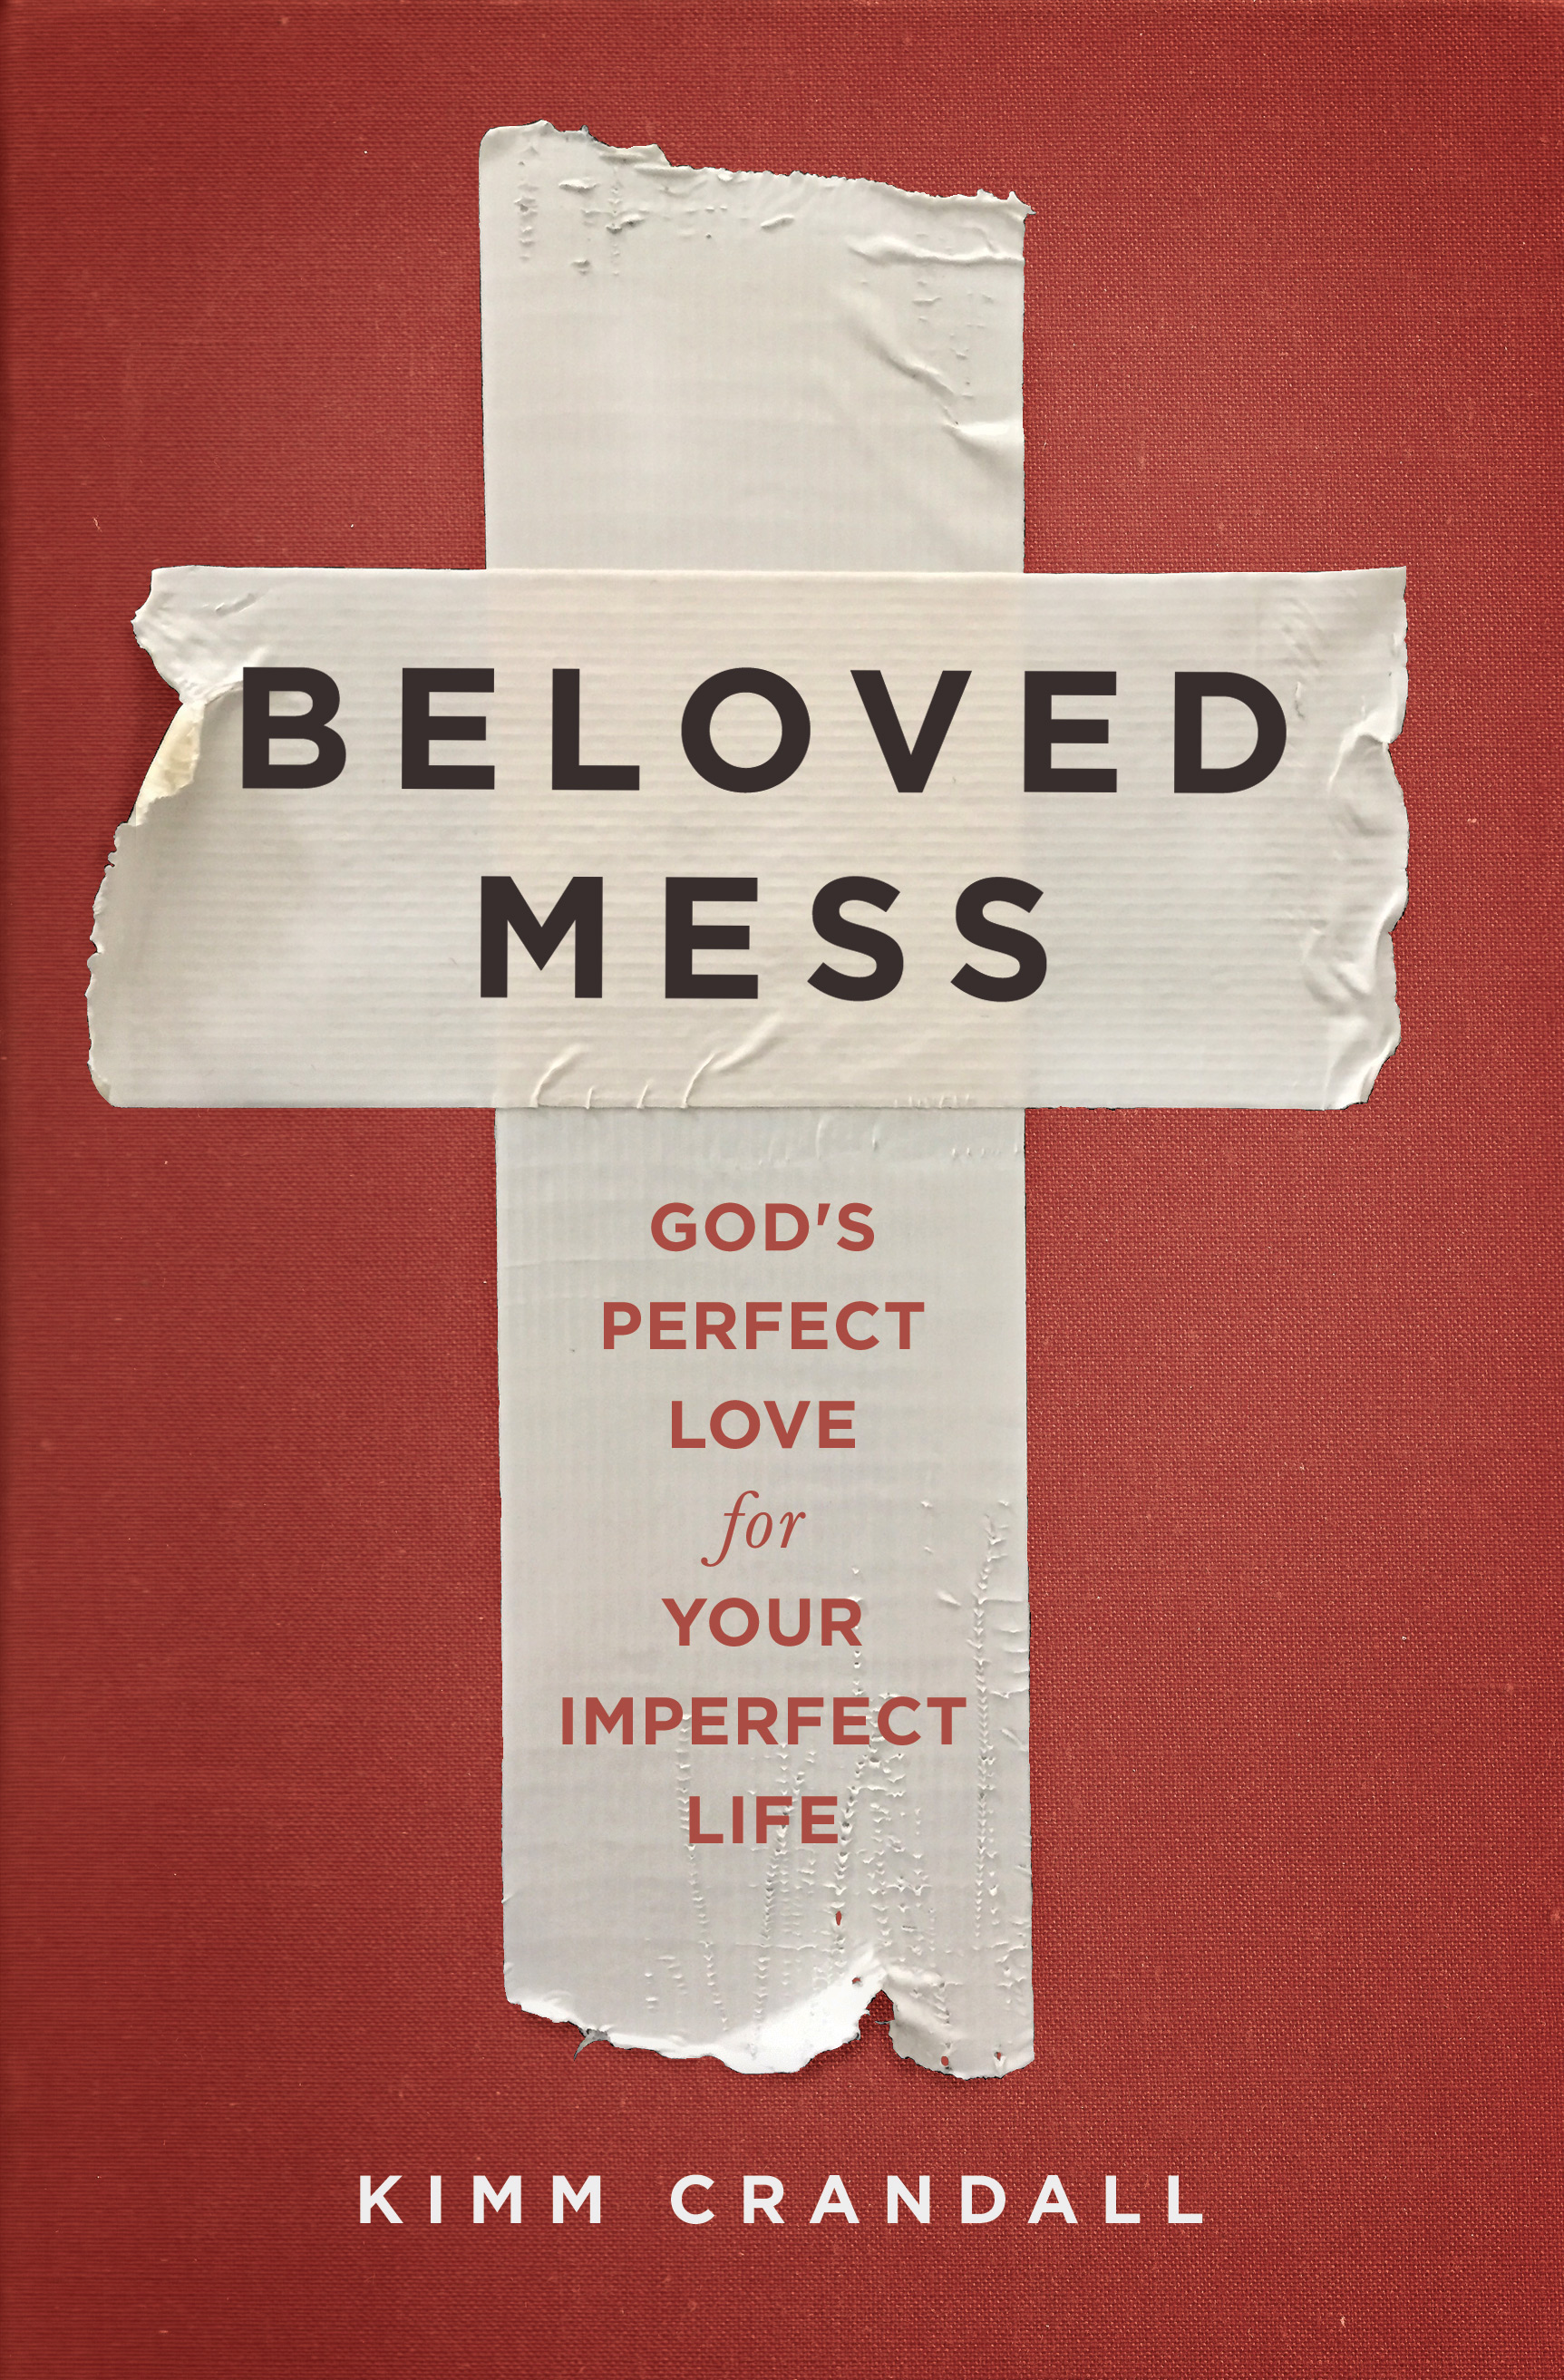 Beloved-Mess-Cross-(red-BG)-1